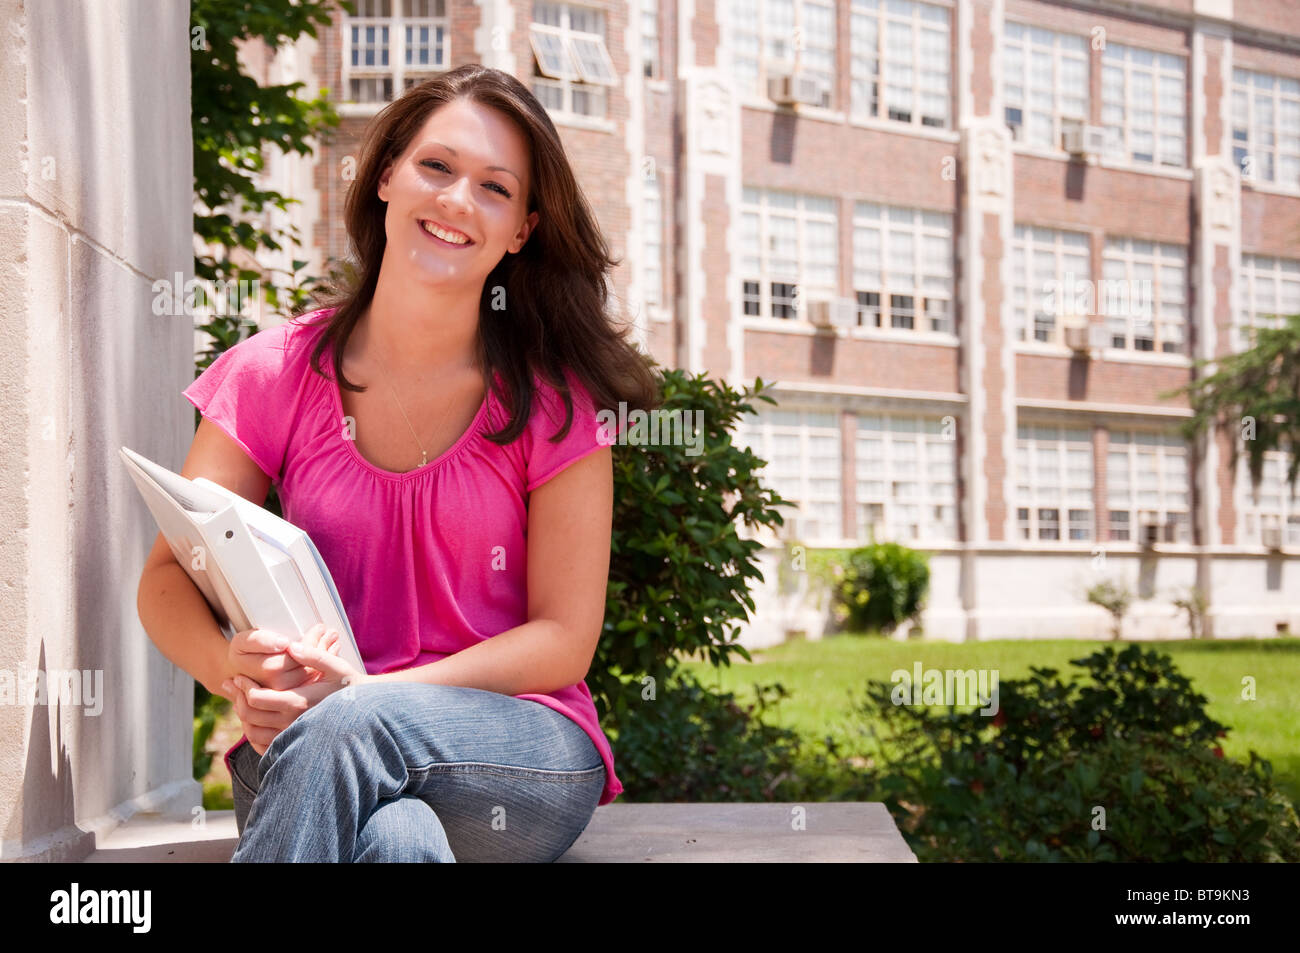 Female high school student seated with books in hand at school. - Stock Image